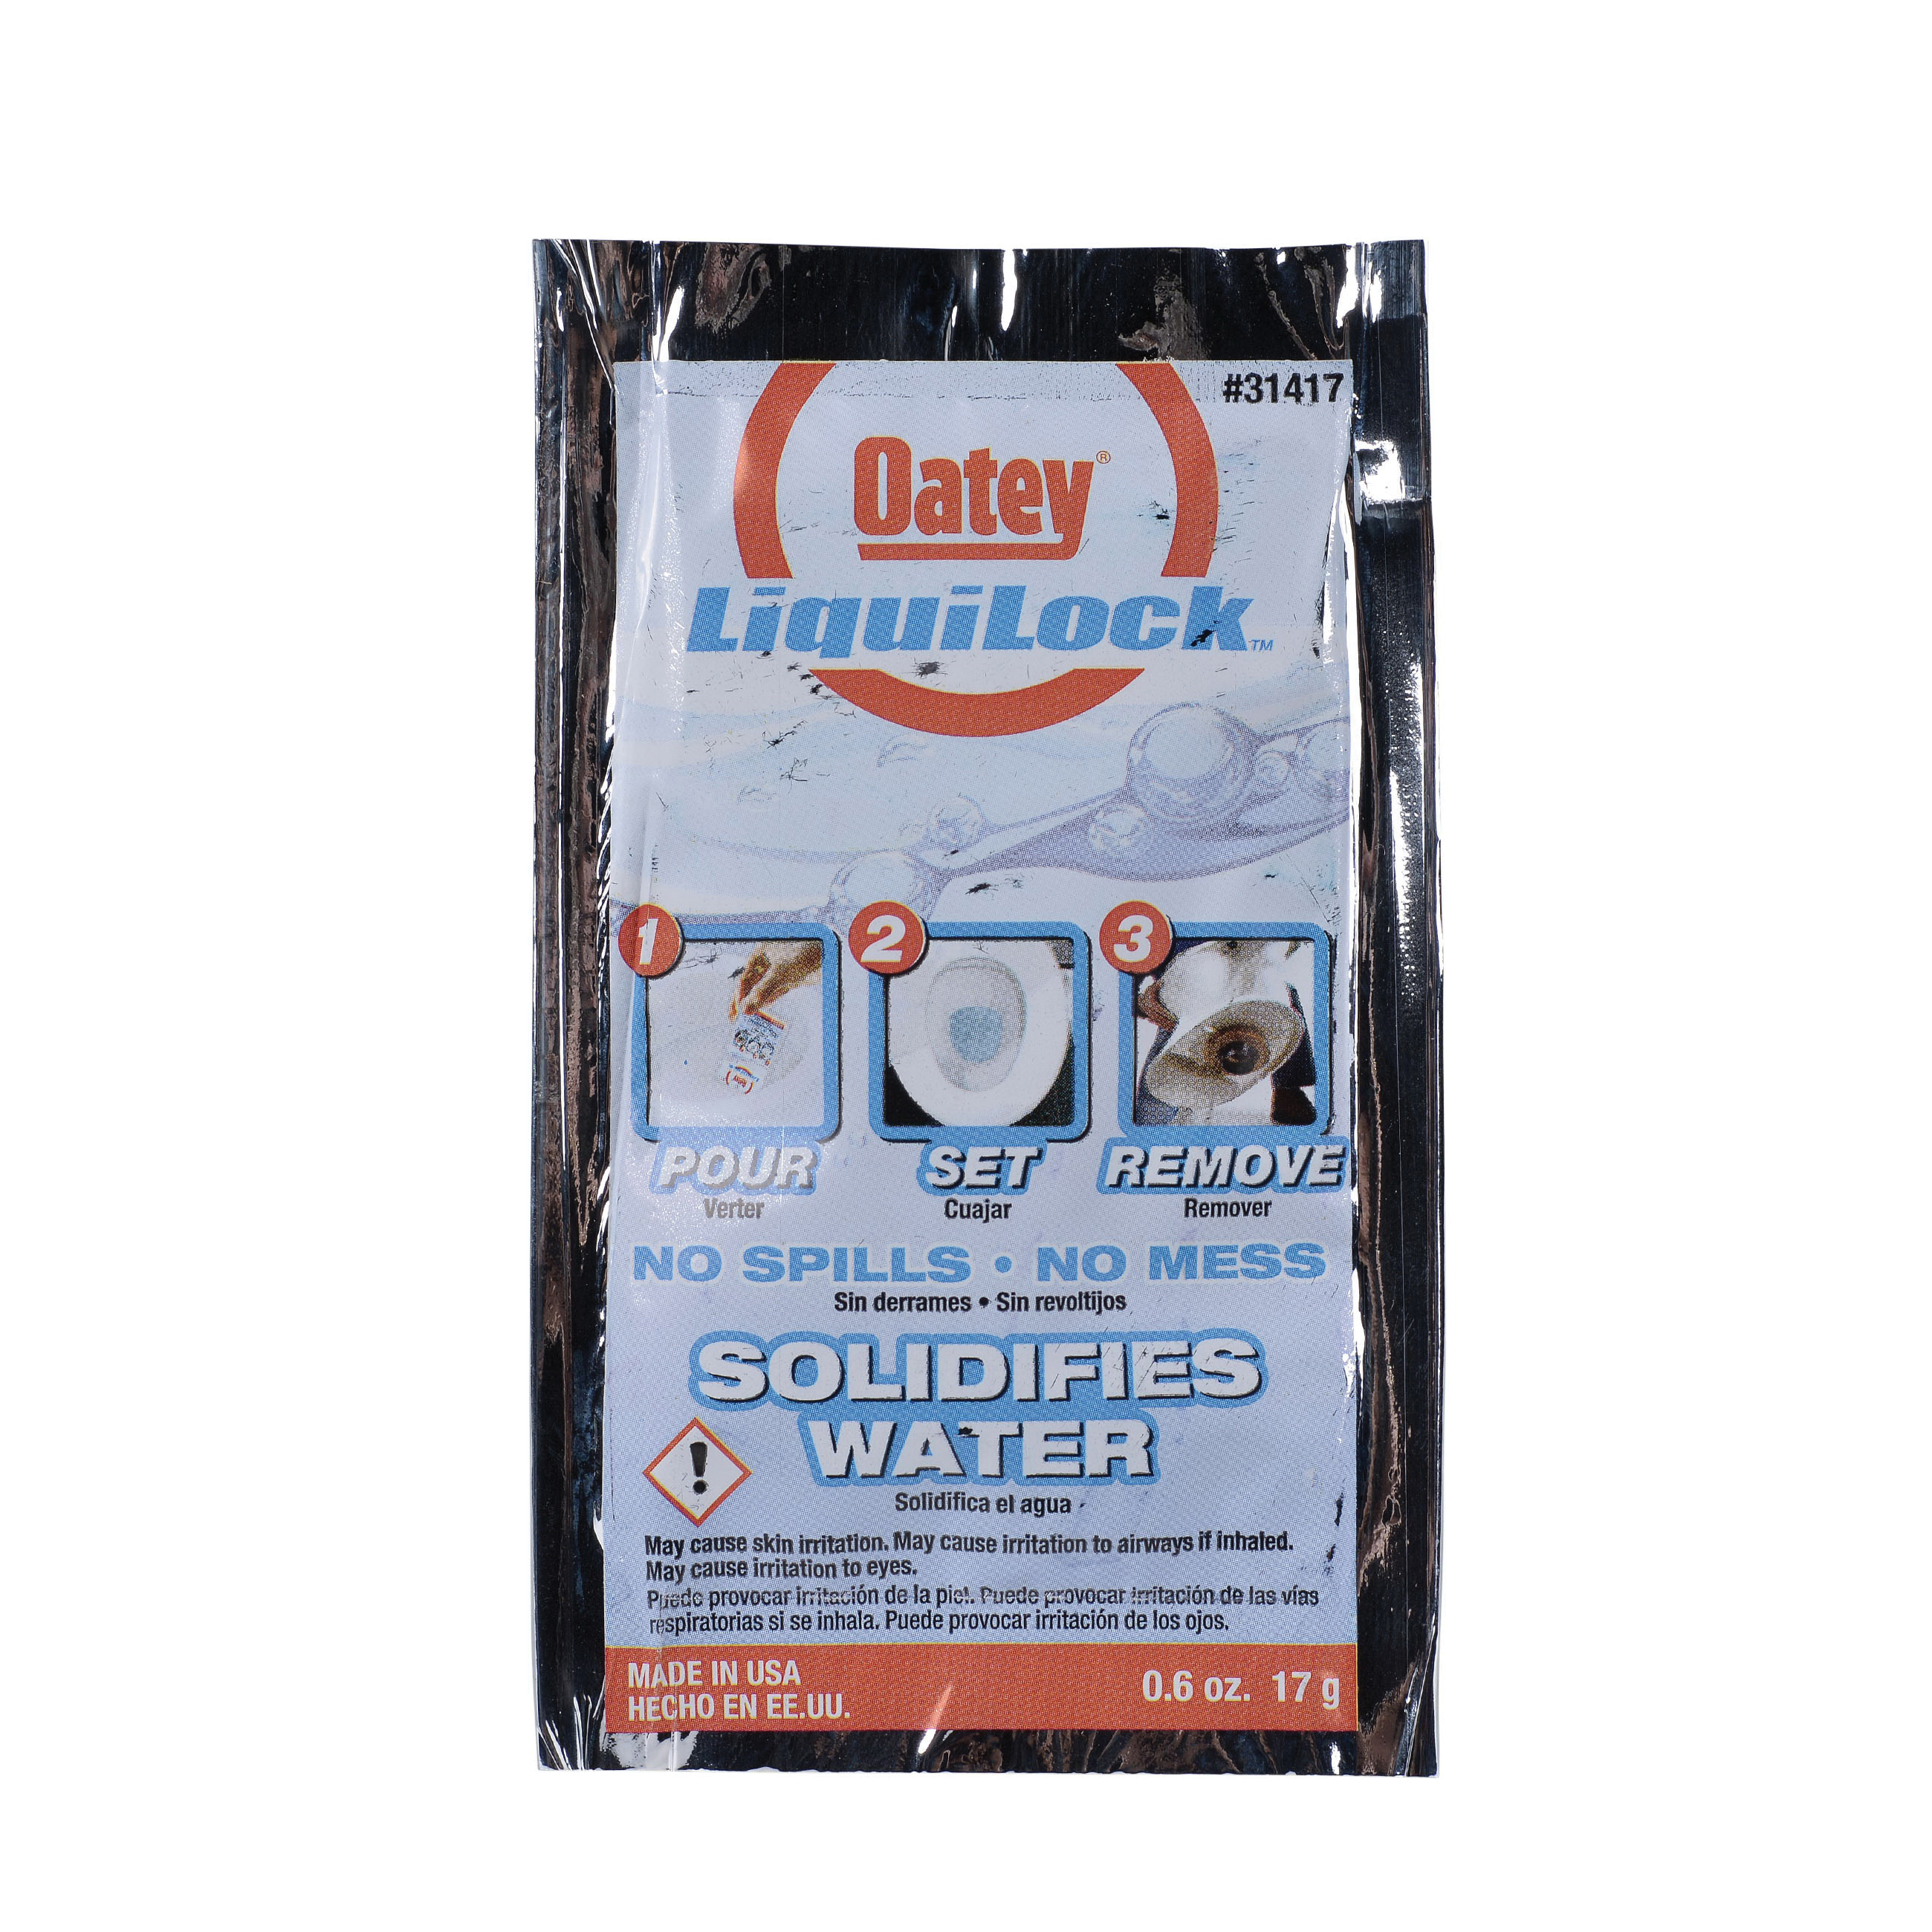 Oatey Liquilock Spill Gel Toilet Water Solidifier